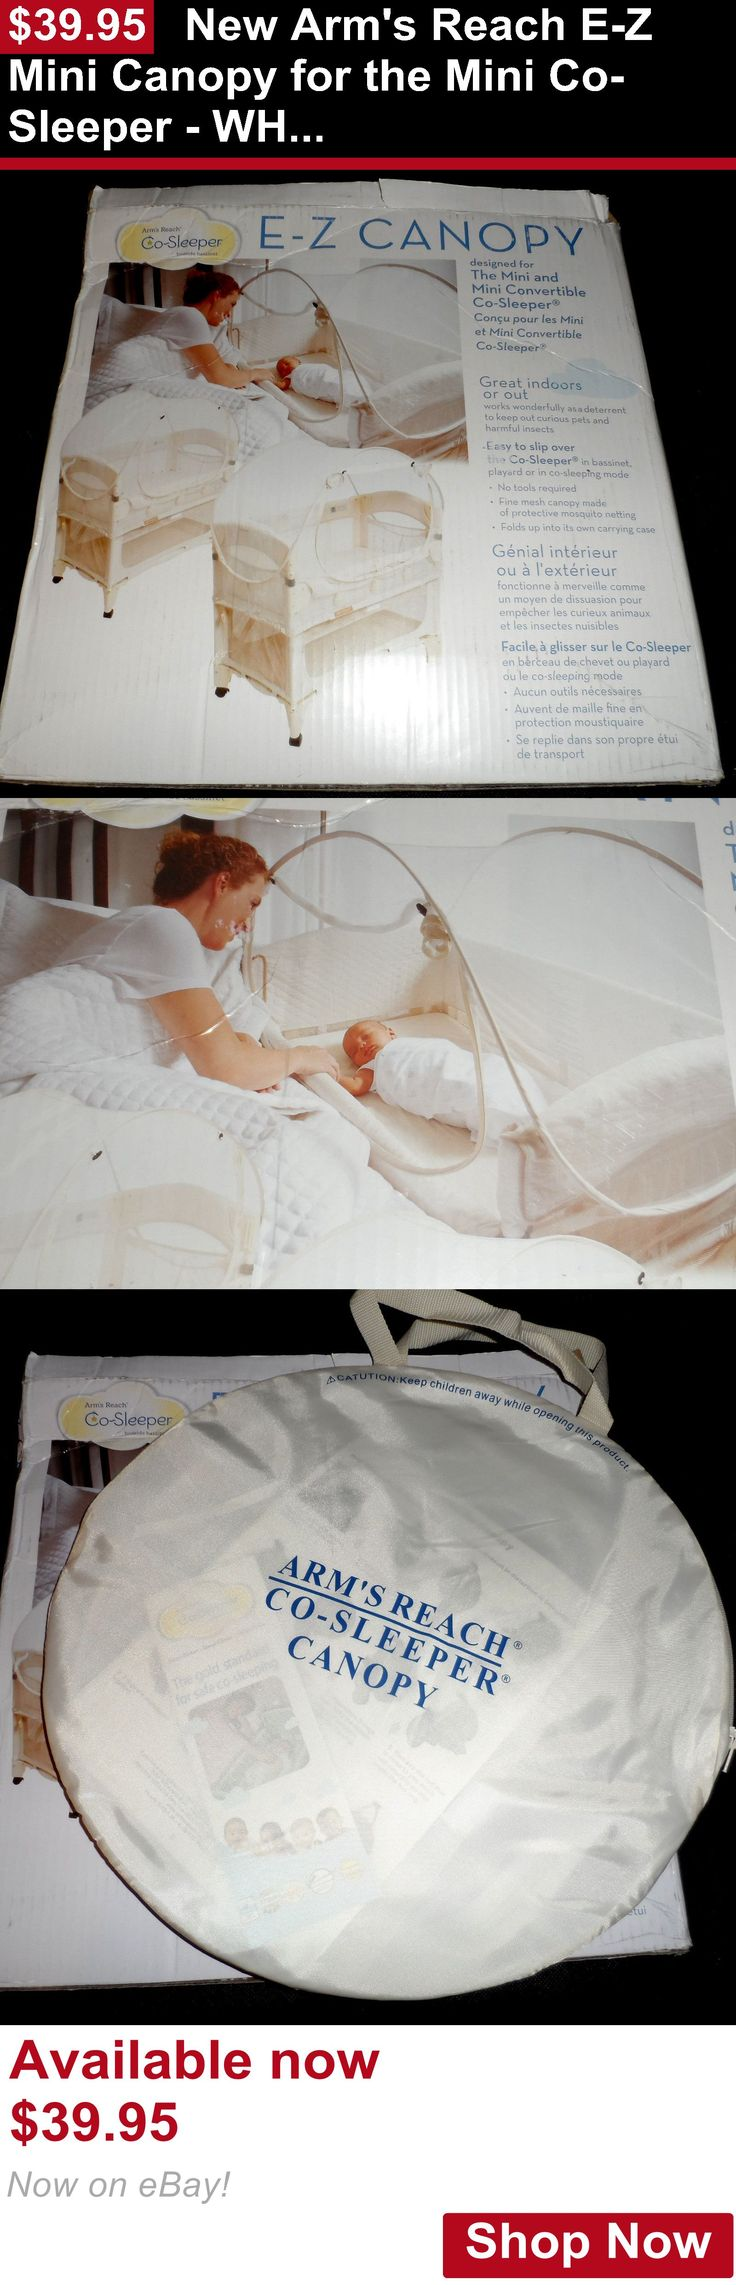 Baby Co-Sleepers: New Arms Reach E-Z Mini Canopy For The Mini Co-Sleeper - White BUY IT NOW ONLY: $39.95